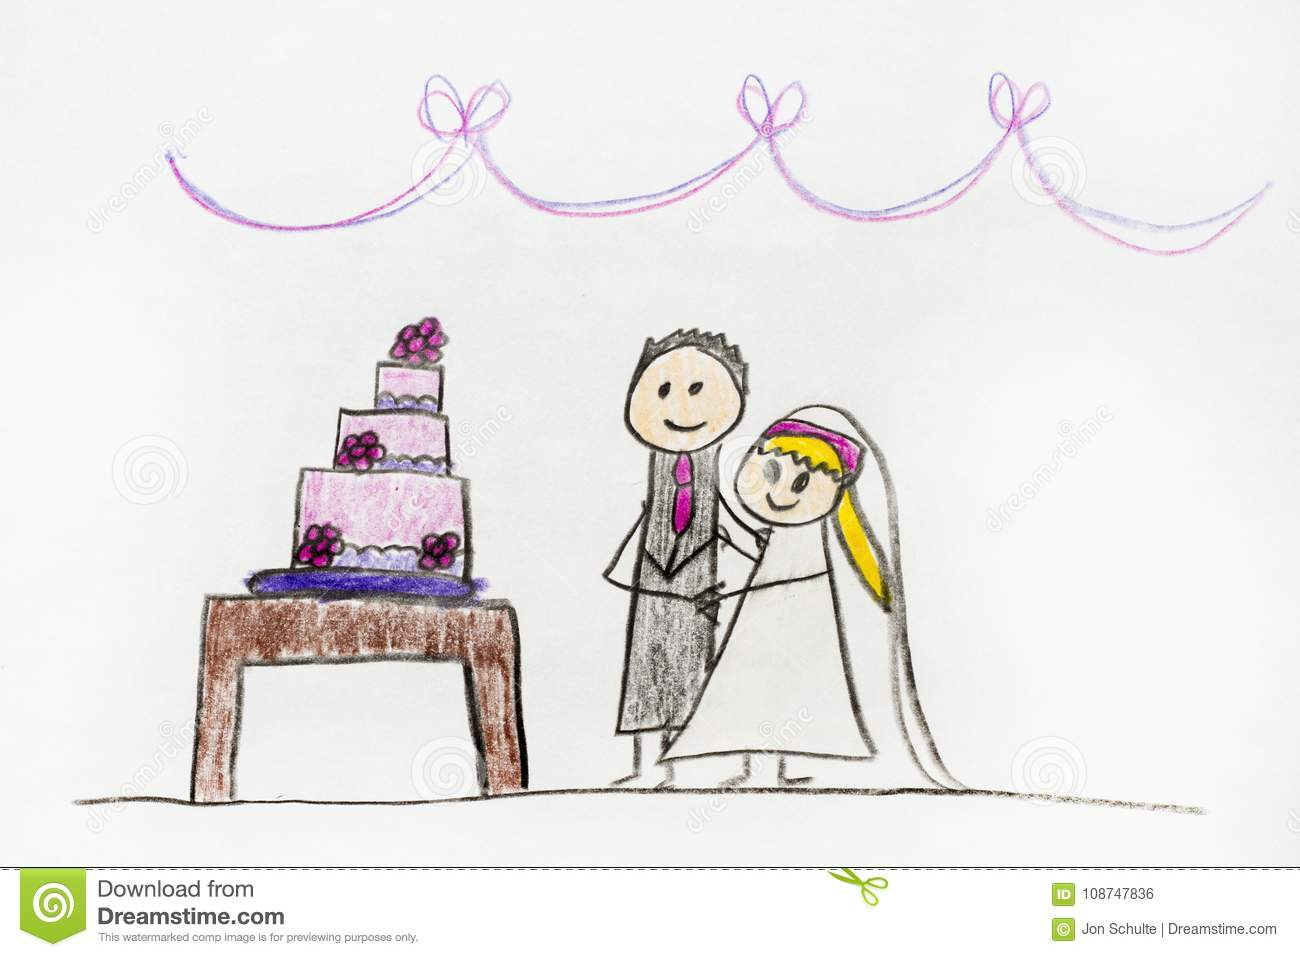 A kids drawing of a wedding cake and couple getting married